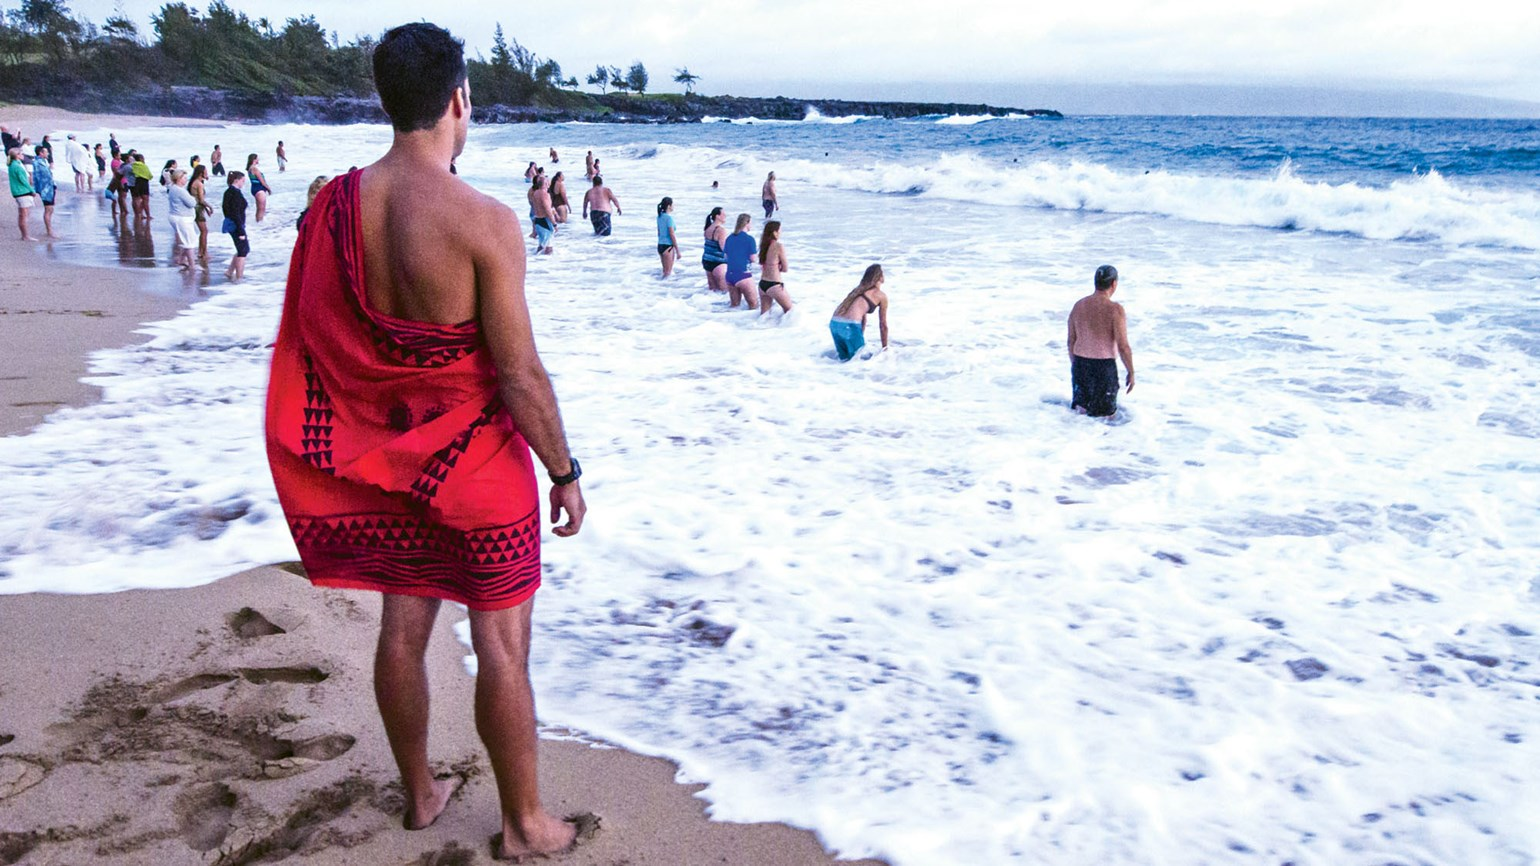 The dawn hiuwai ceremony opens the annual Celebration of the Arts Festival at the Ritz-Carlton Kapalua.